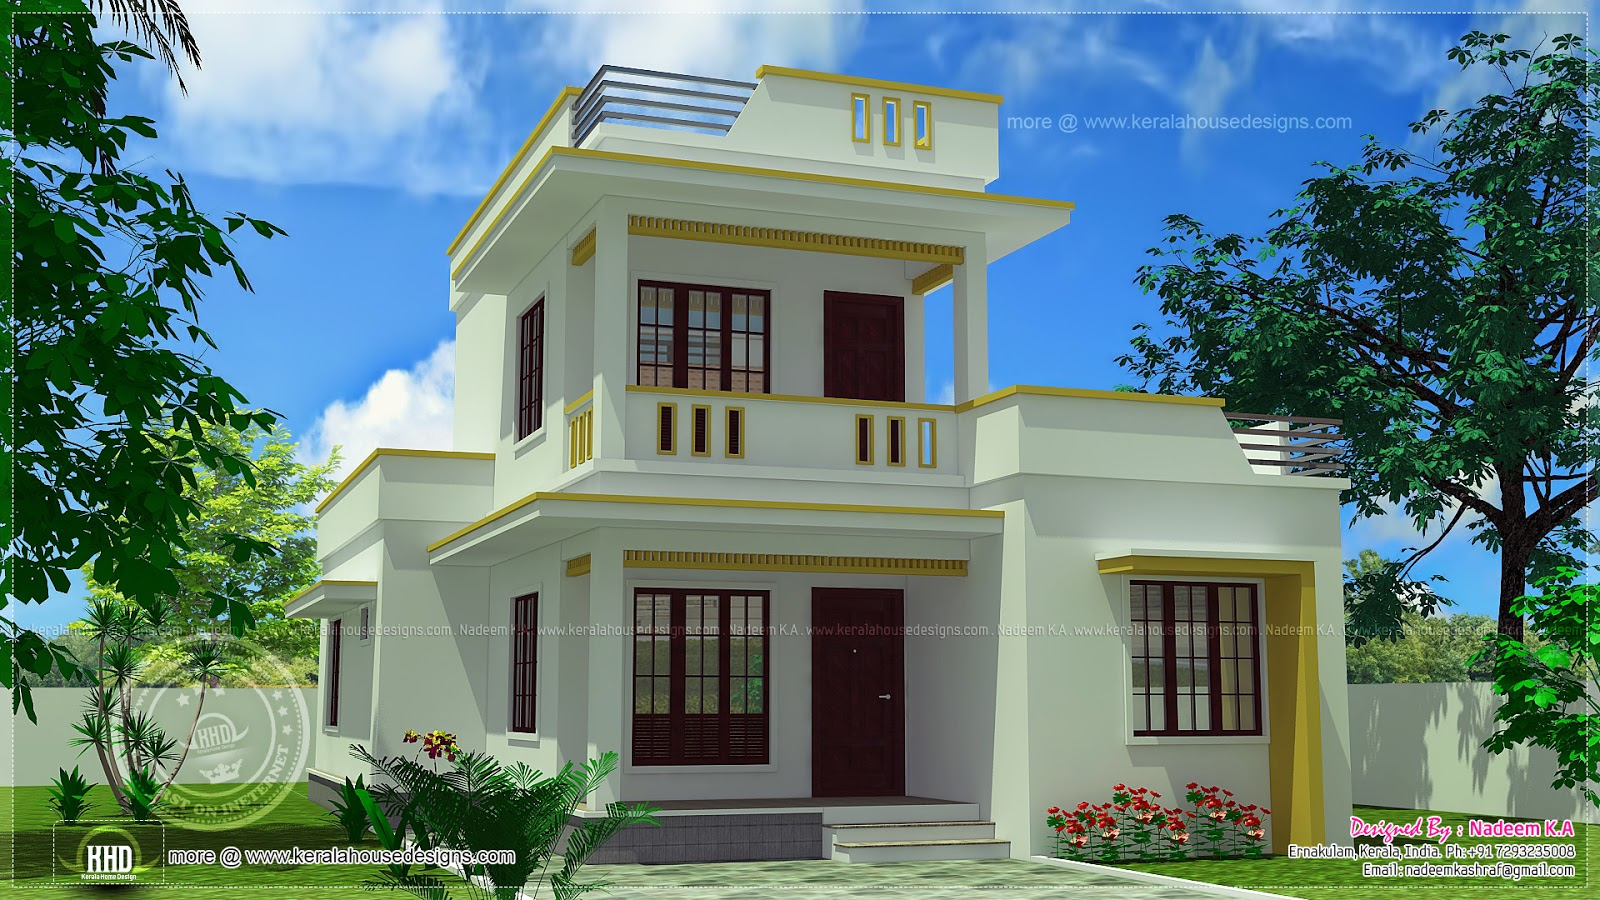 August 2013 kerala home design and floor plans for Houses and house plans